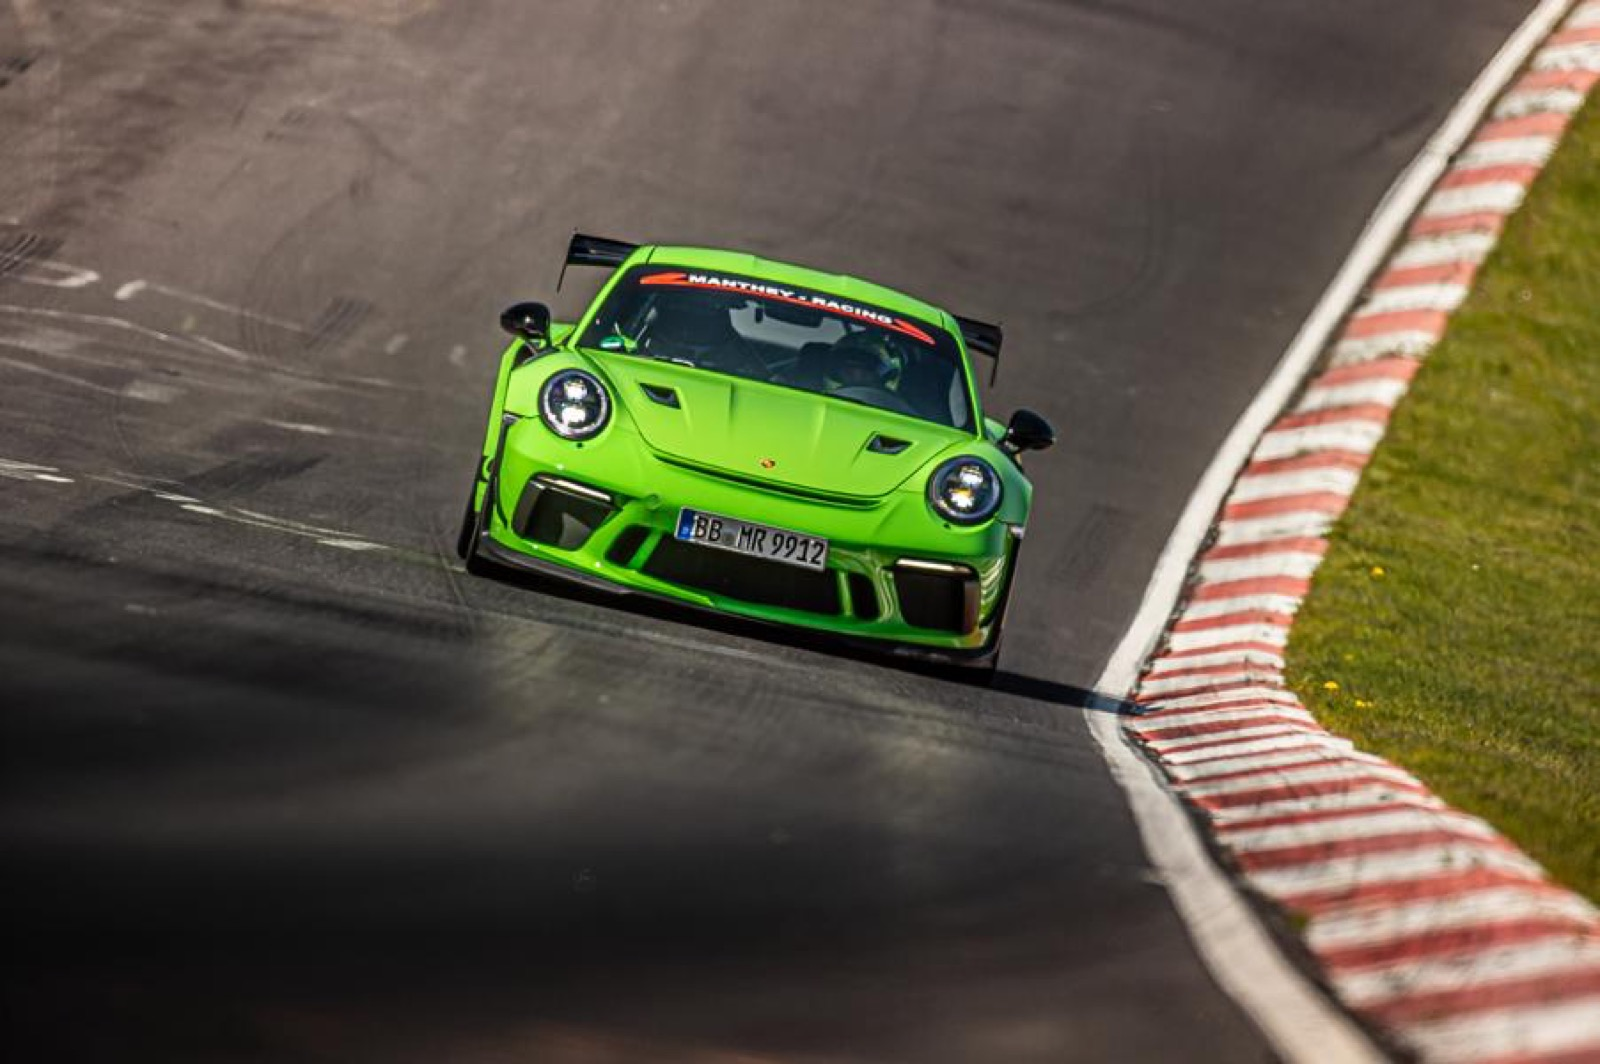 Porsche-911-GT3-RS-MR-by-Manthey-Racing-14